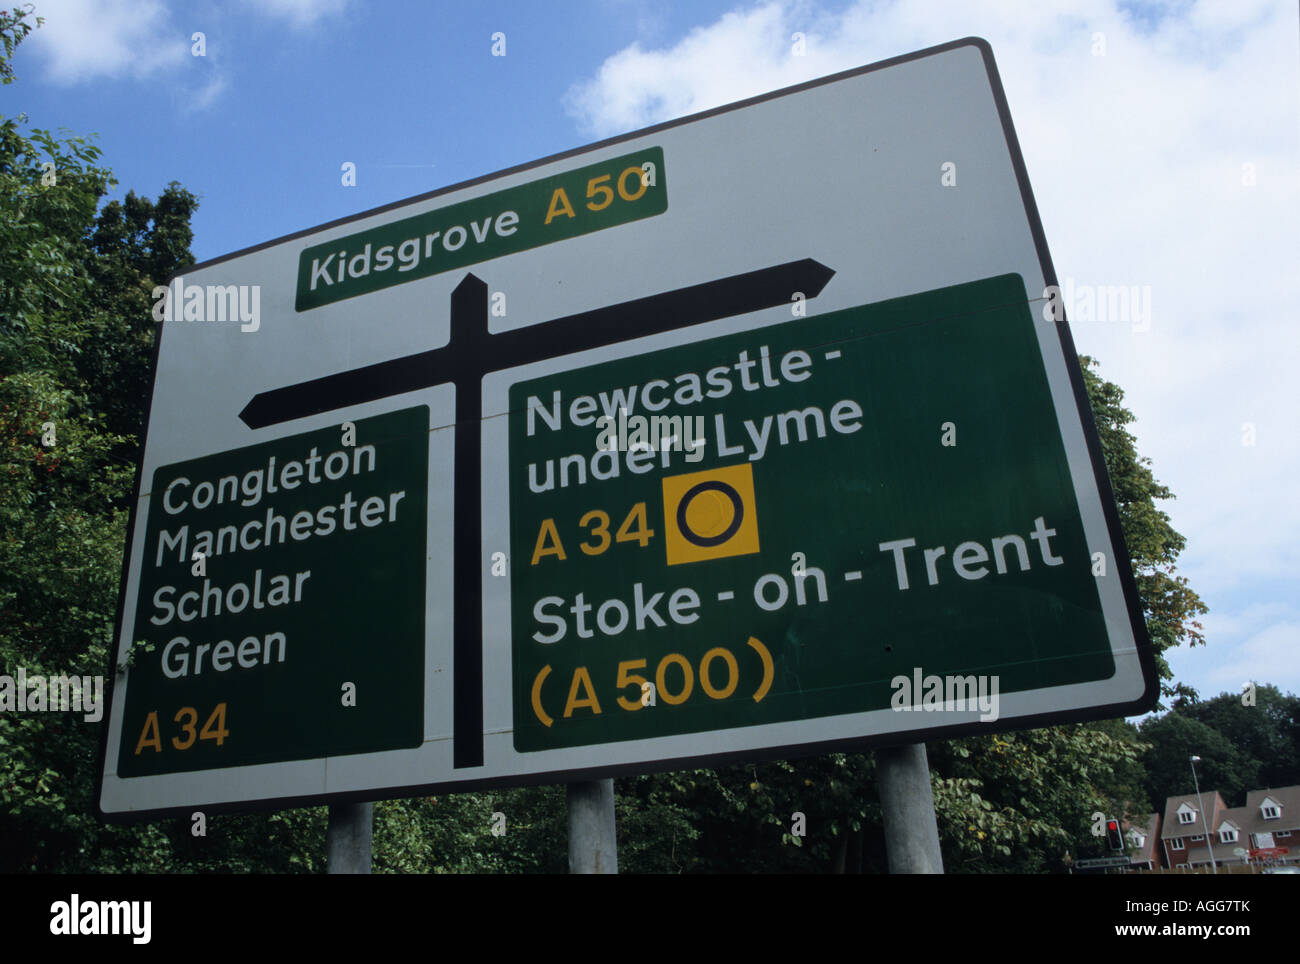 A50 Road Sign Stock Photo - Alamy